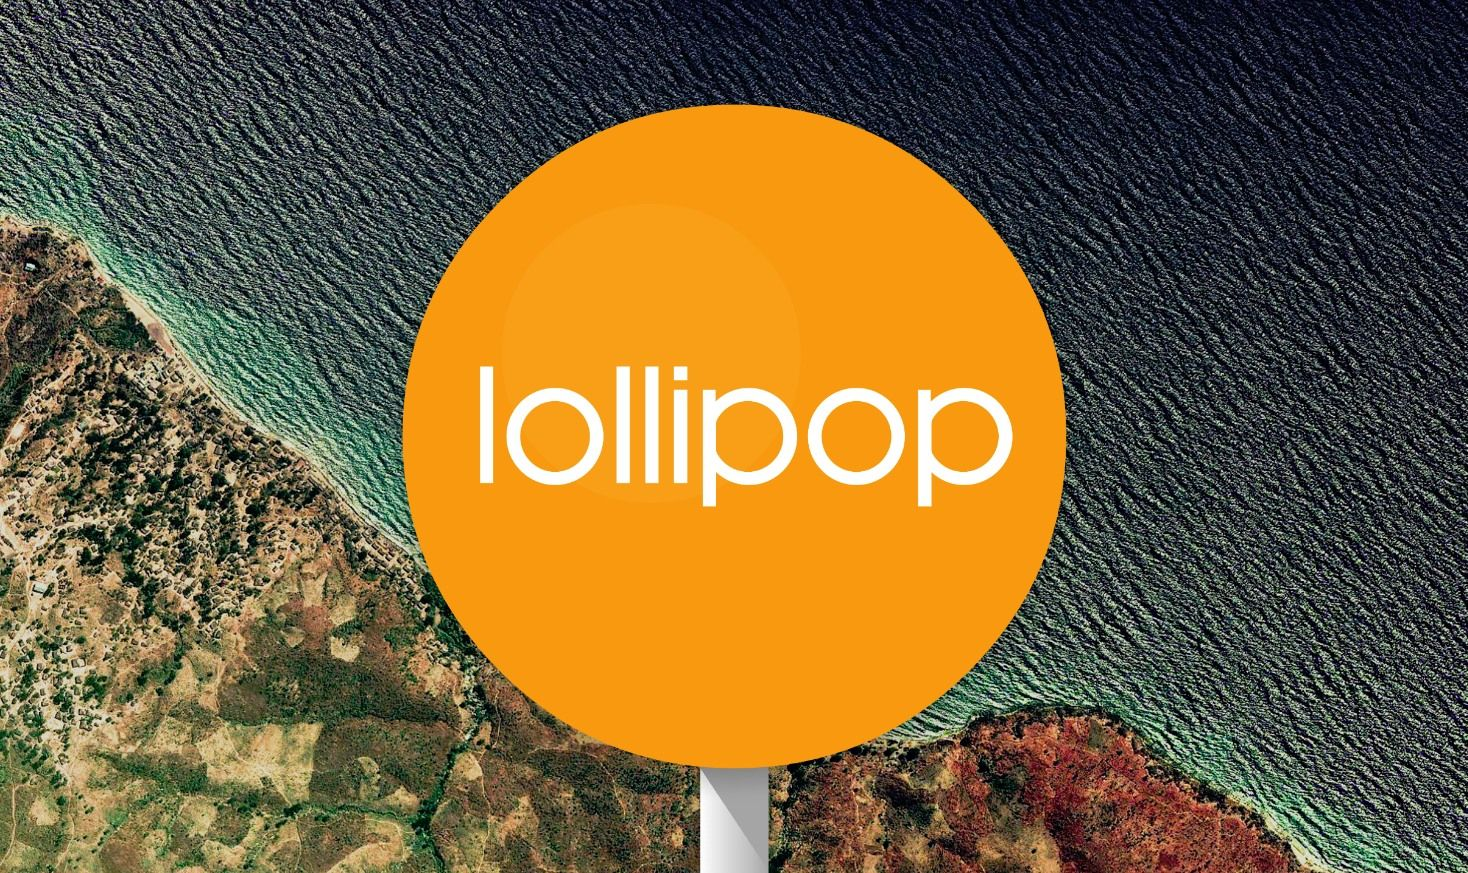 Android 5.1.1 for Galaxy Note 10.1 2014 available now